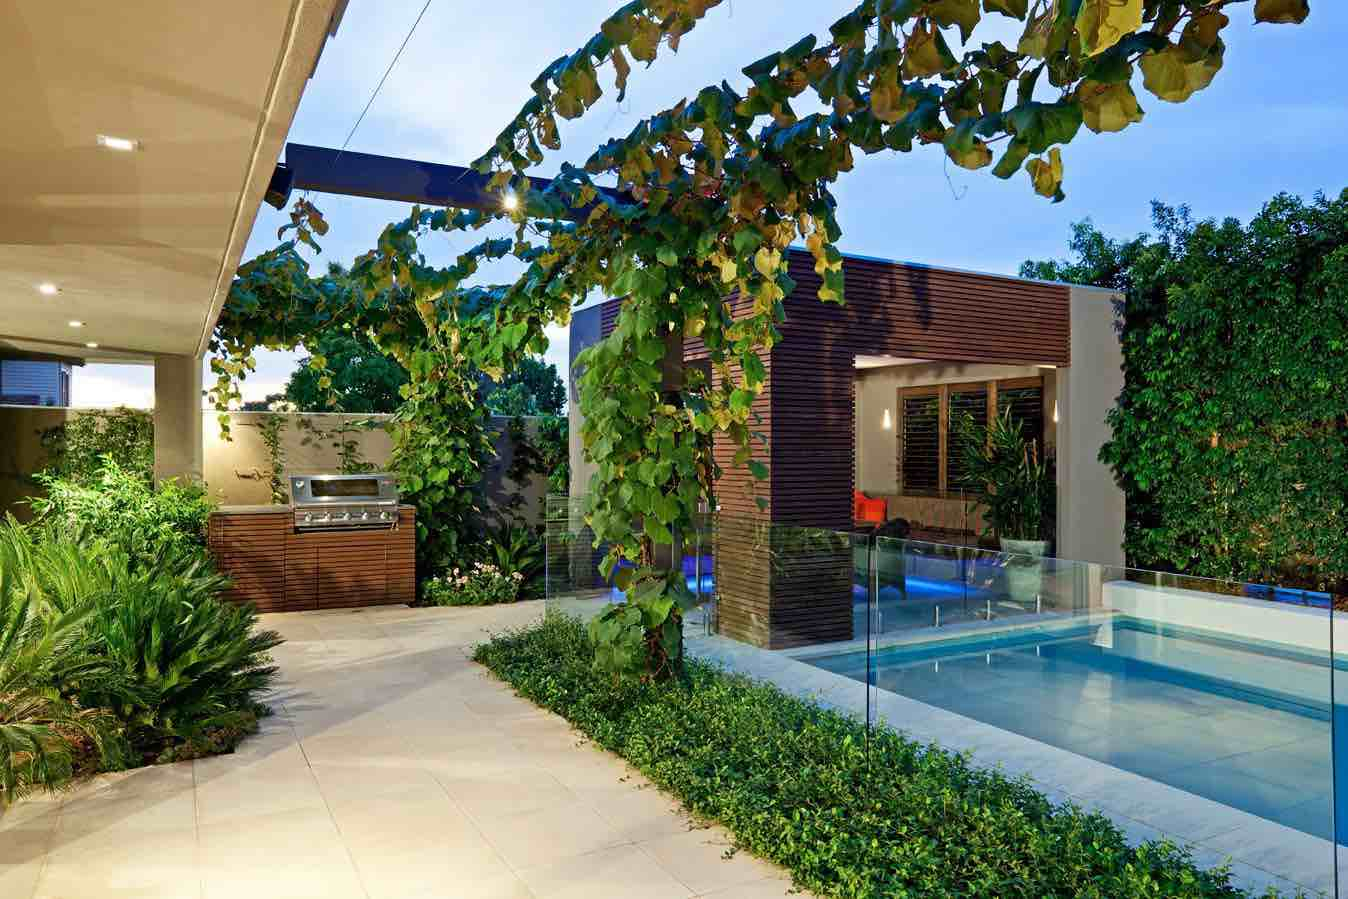 41 backyard design ideas for small yards worthminer for Yard designer